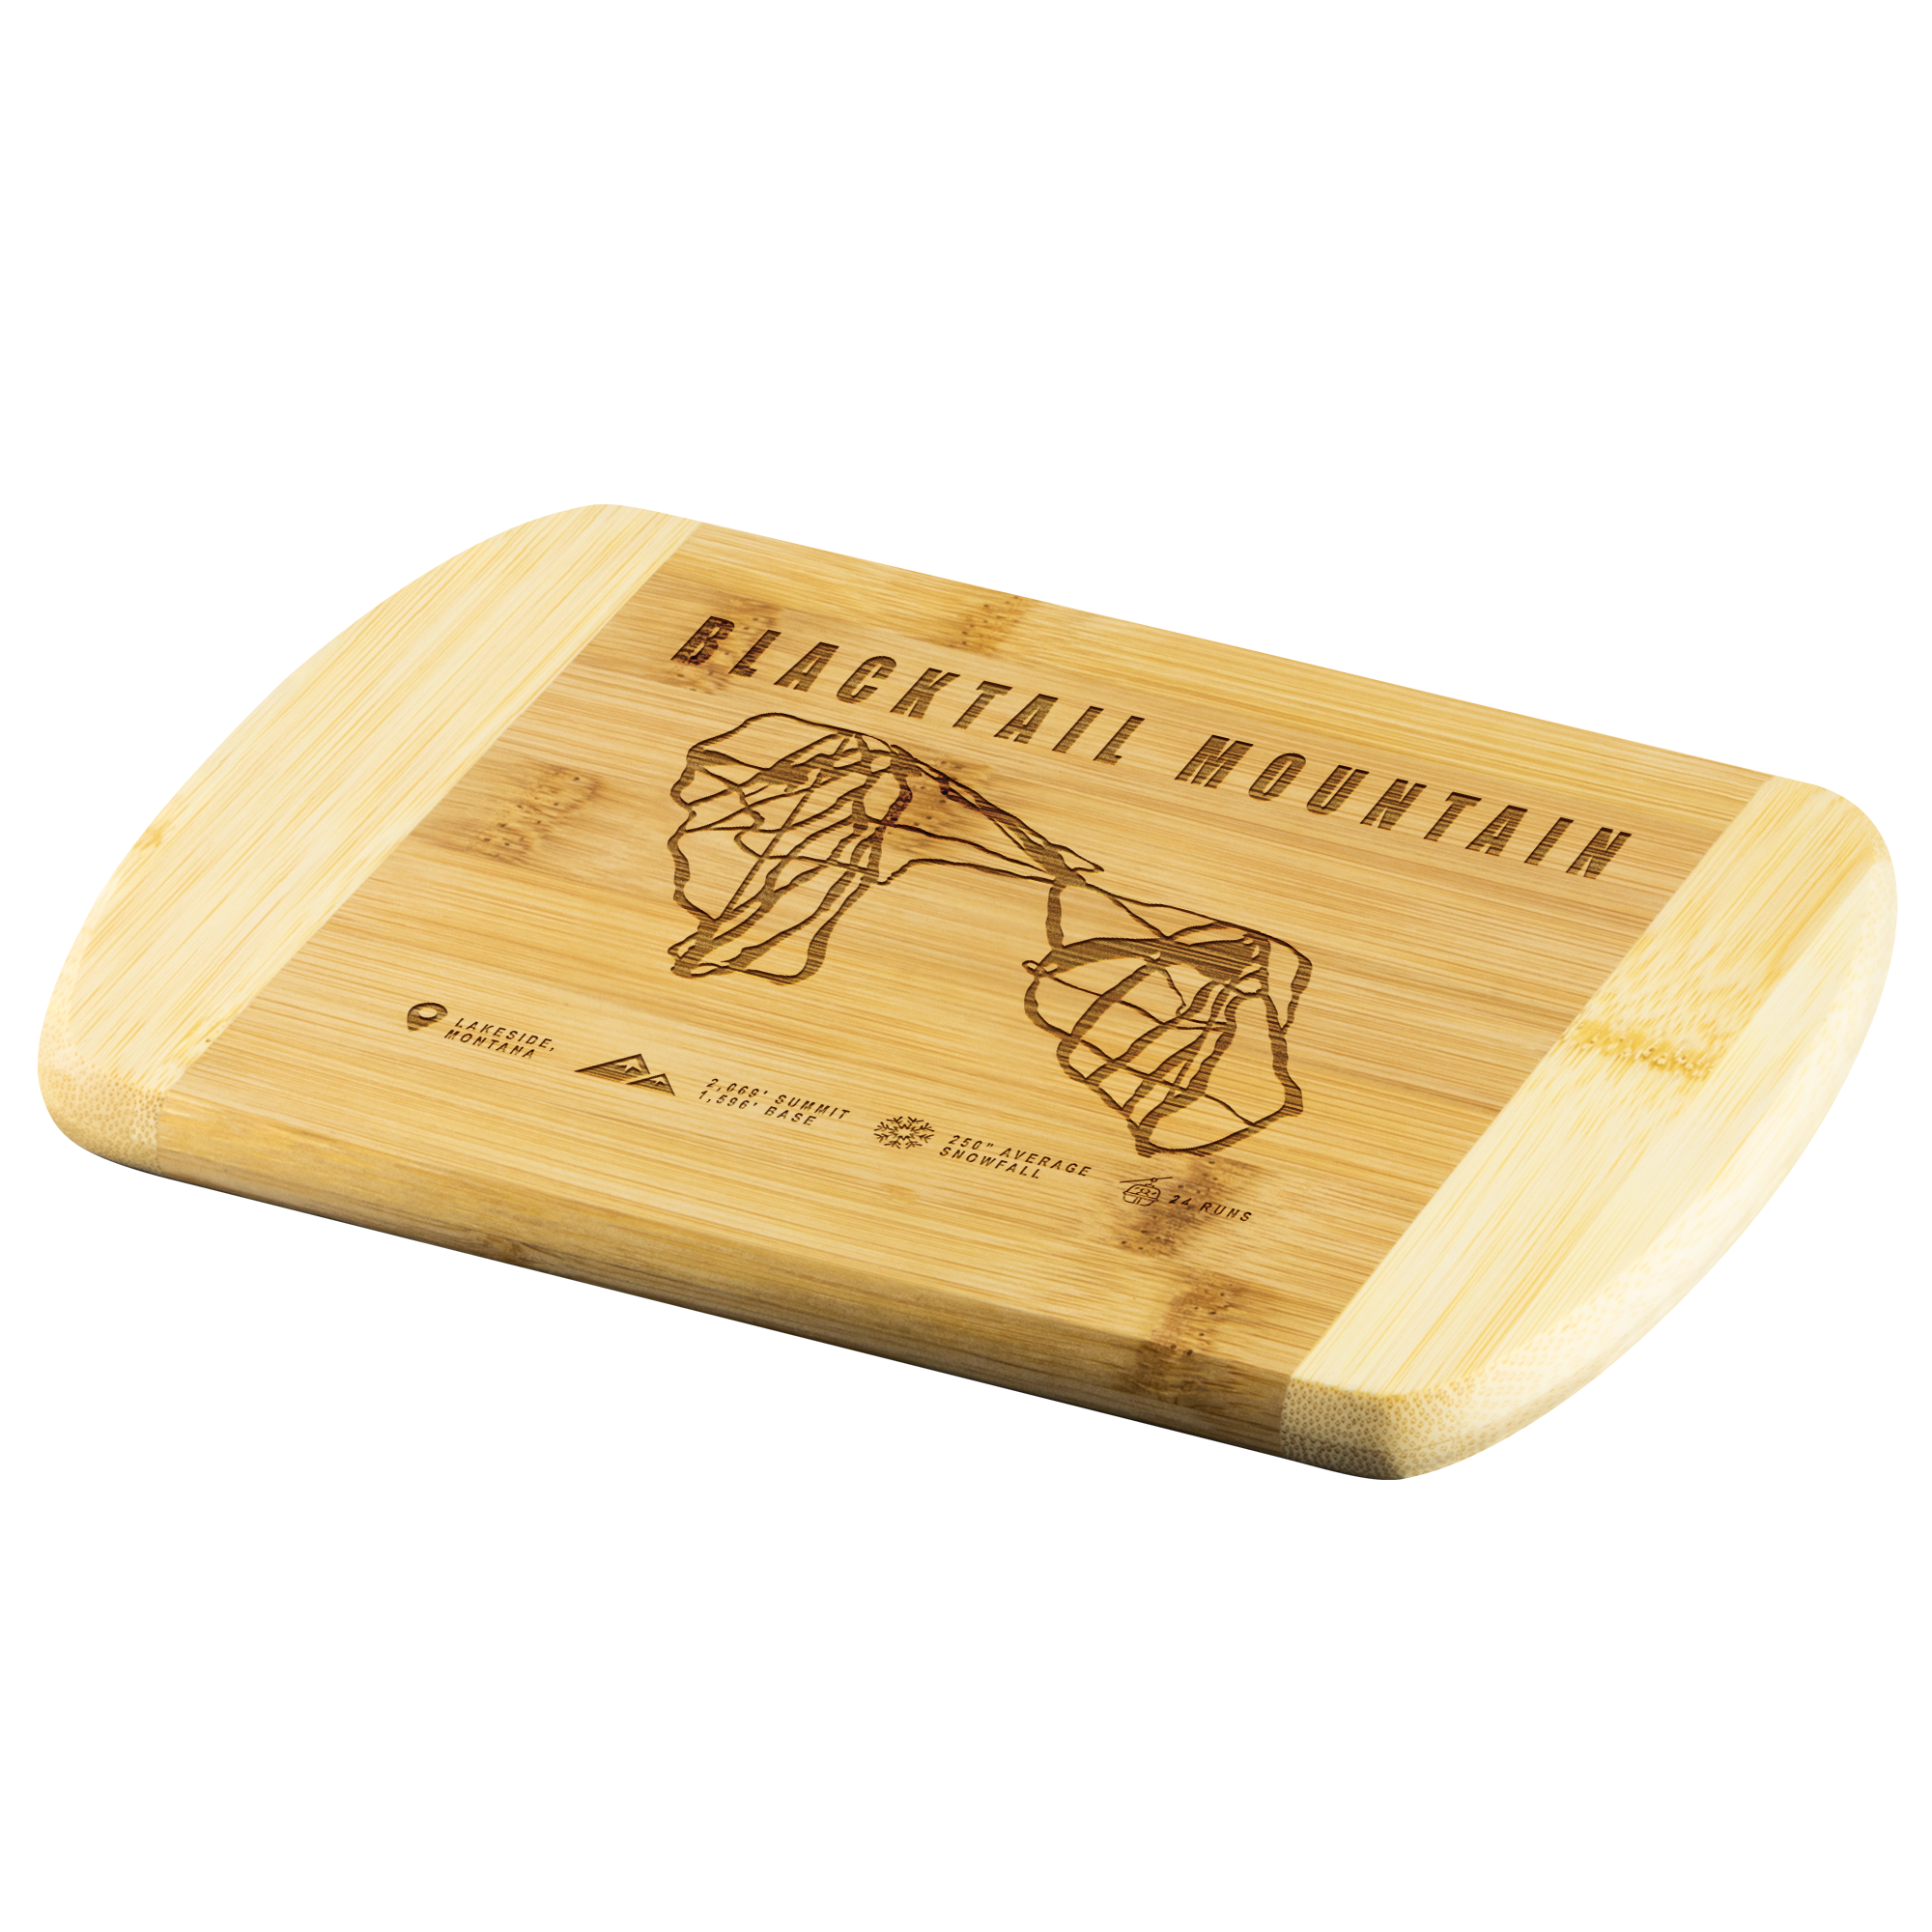 Blacktail Mountain Montana Ski-Resort Map Bamboo Cutting Board Round Edge